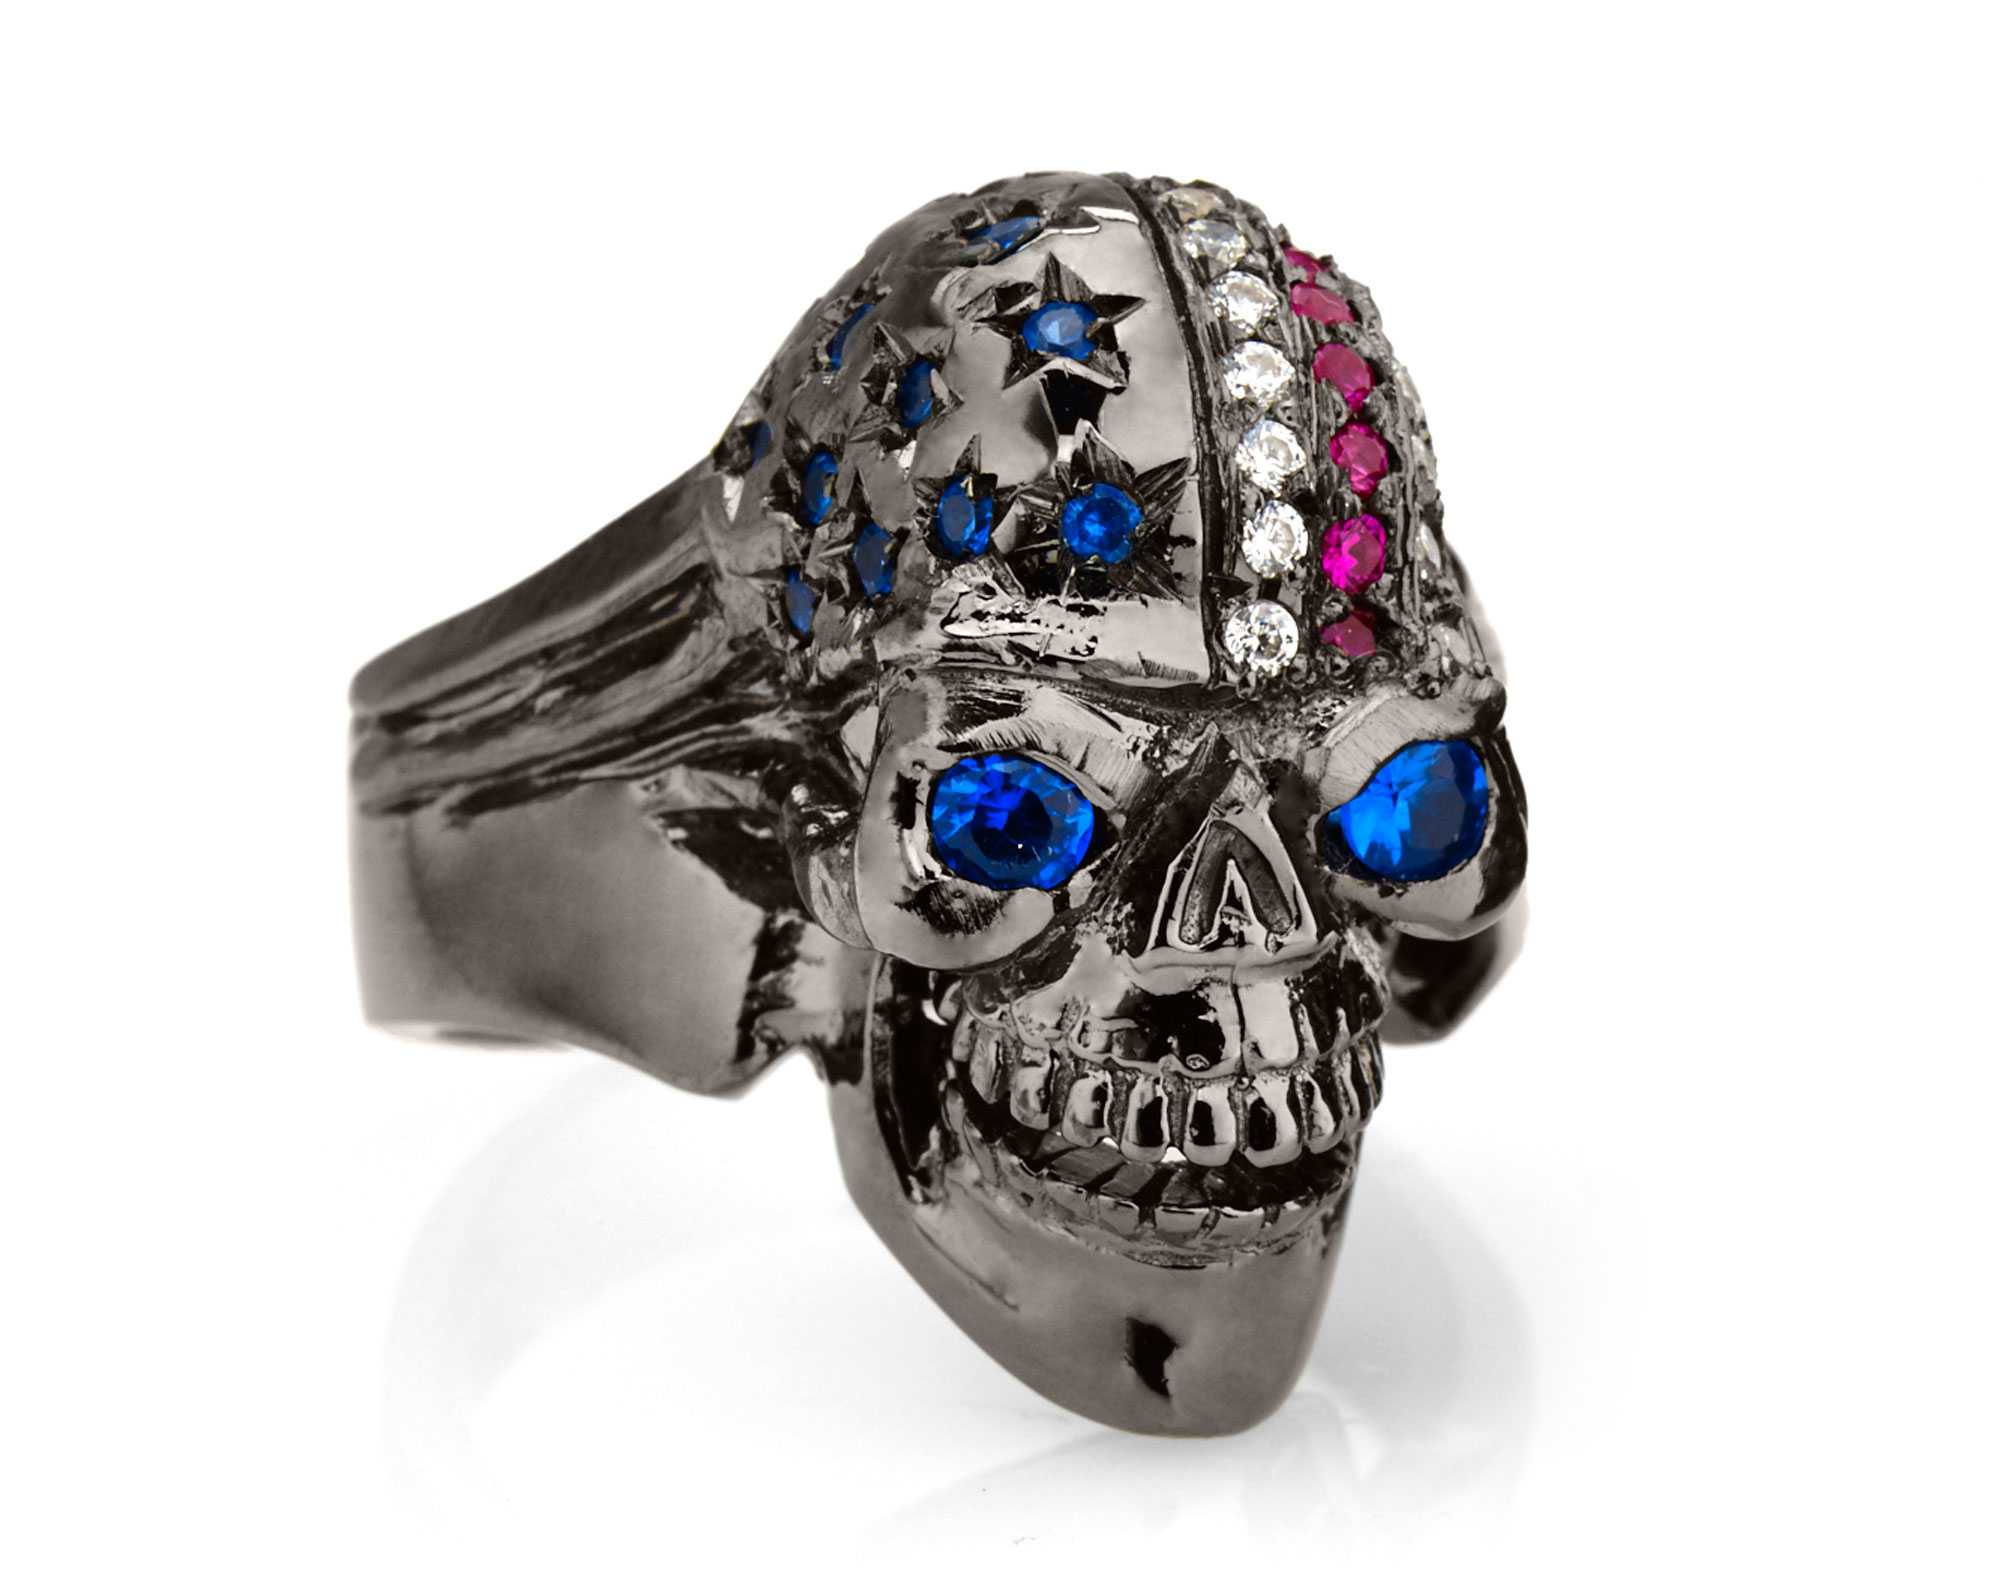 RG106BK-BL The Freedom Rider Skull Ring (Right Front View) in Rhodium Plated Sterling Silver in Blue Stones, with Blue, White & Red (Black Collection), designed by Steve Soffa